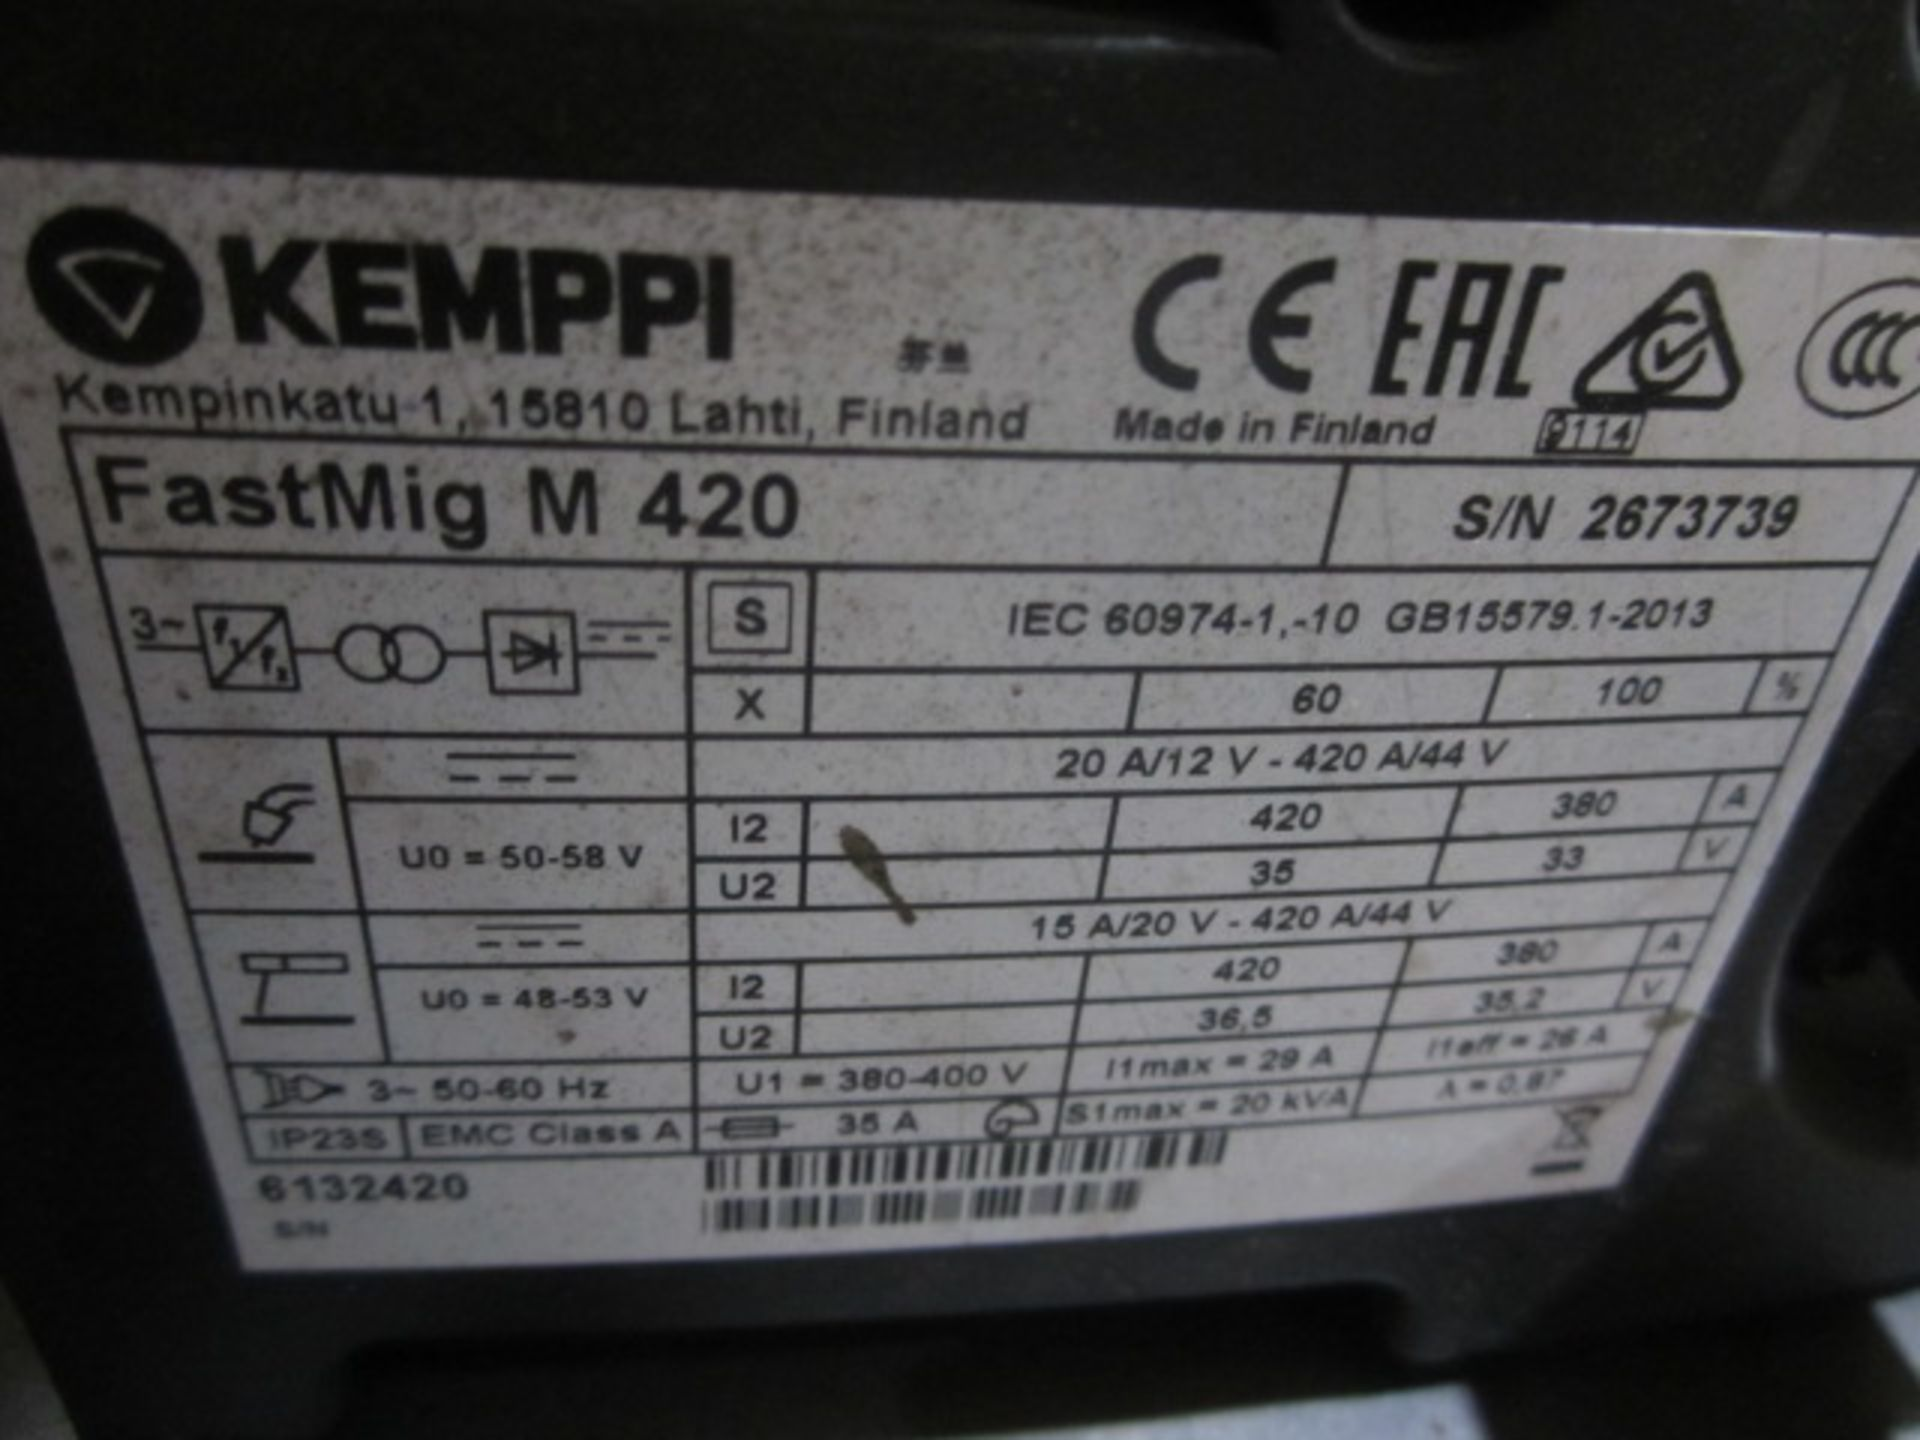 Kemppi Fast Mig M420 mig welder, serial no. 2673739, with Fast Mig MXF65 wire feeder, serial no. - Image 6 of 8